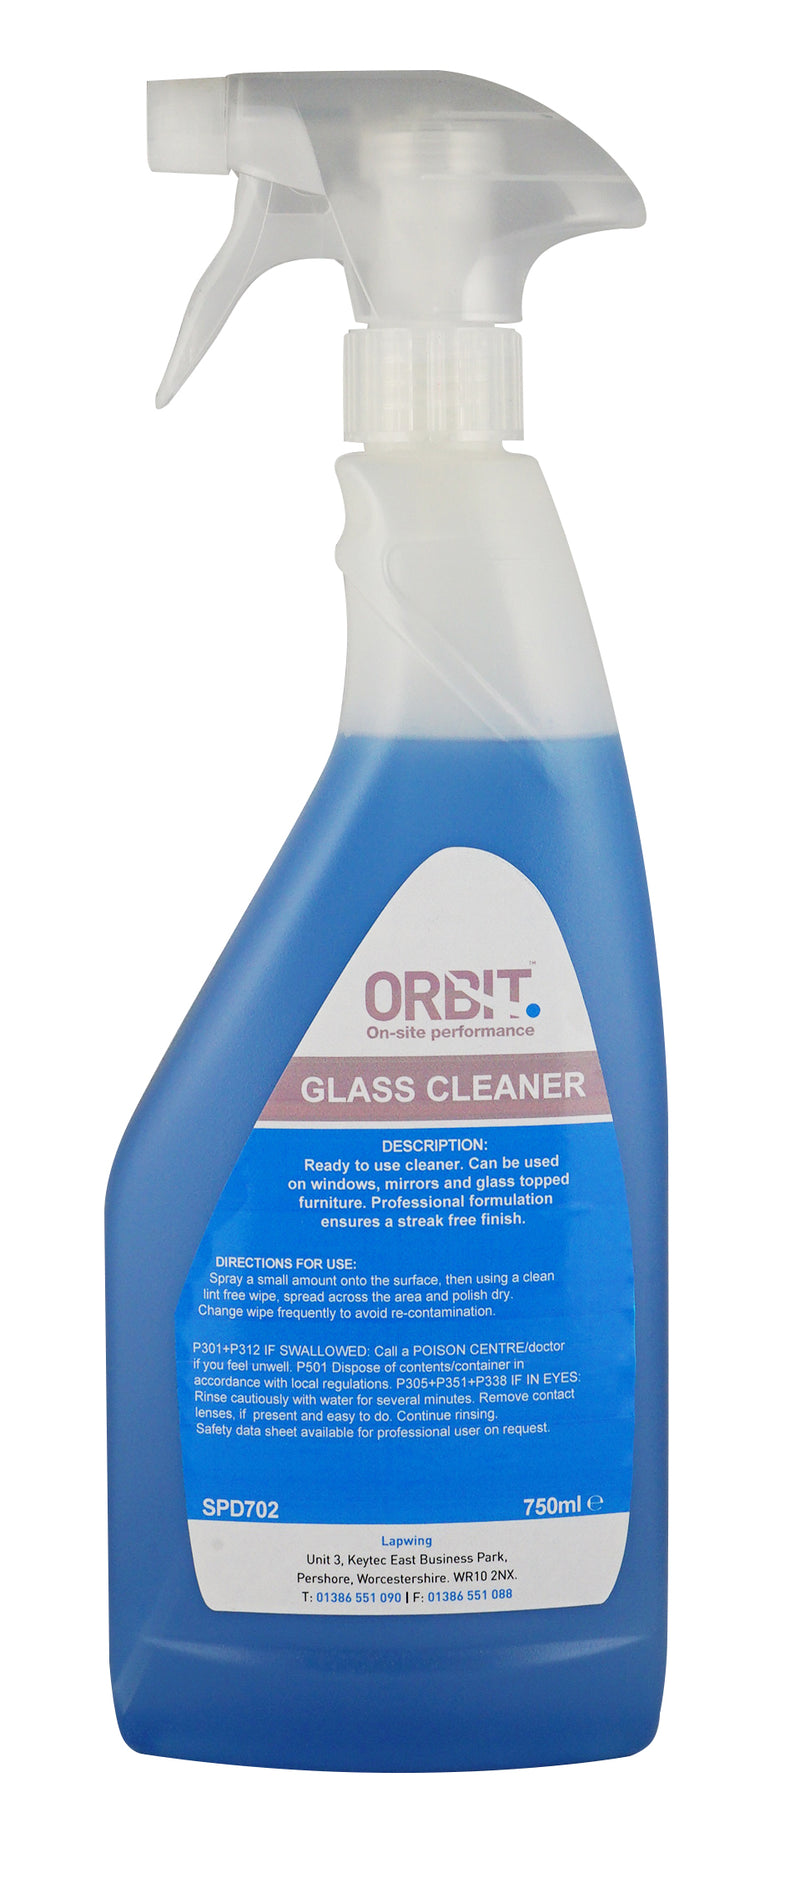 Orbit Window & Glass Cleaner - Orbit - Janitorial Supplies - Lapwing UK